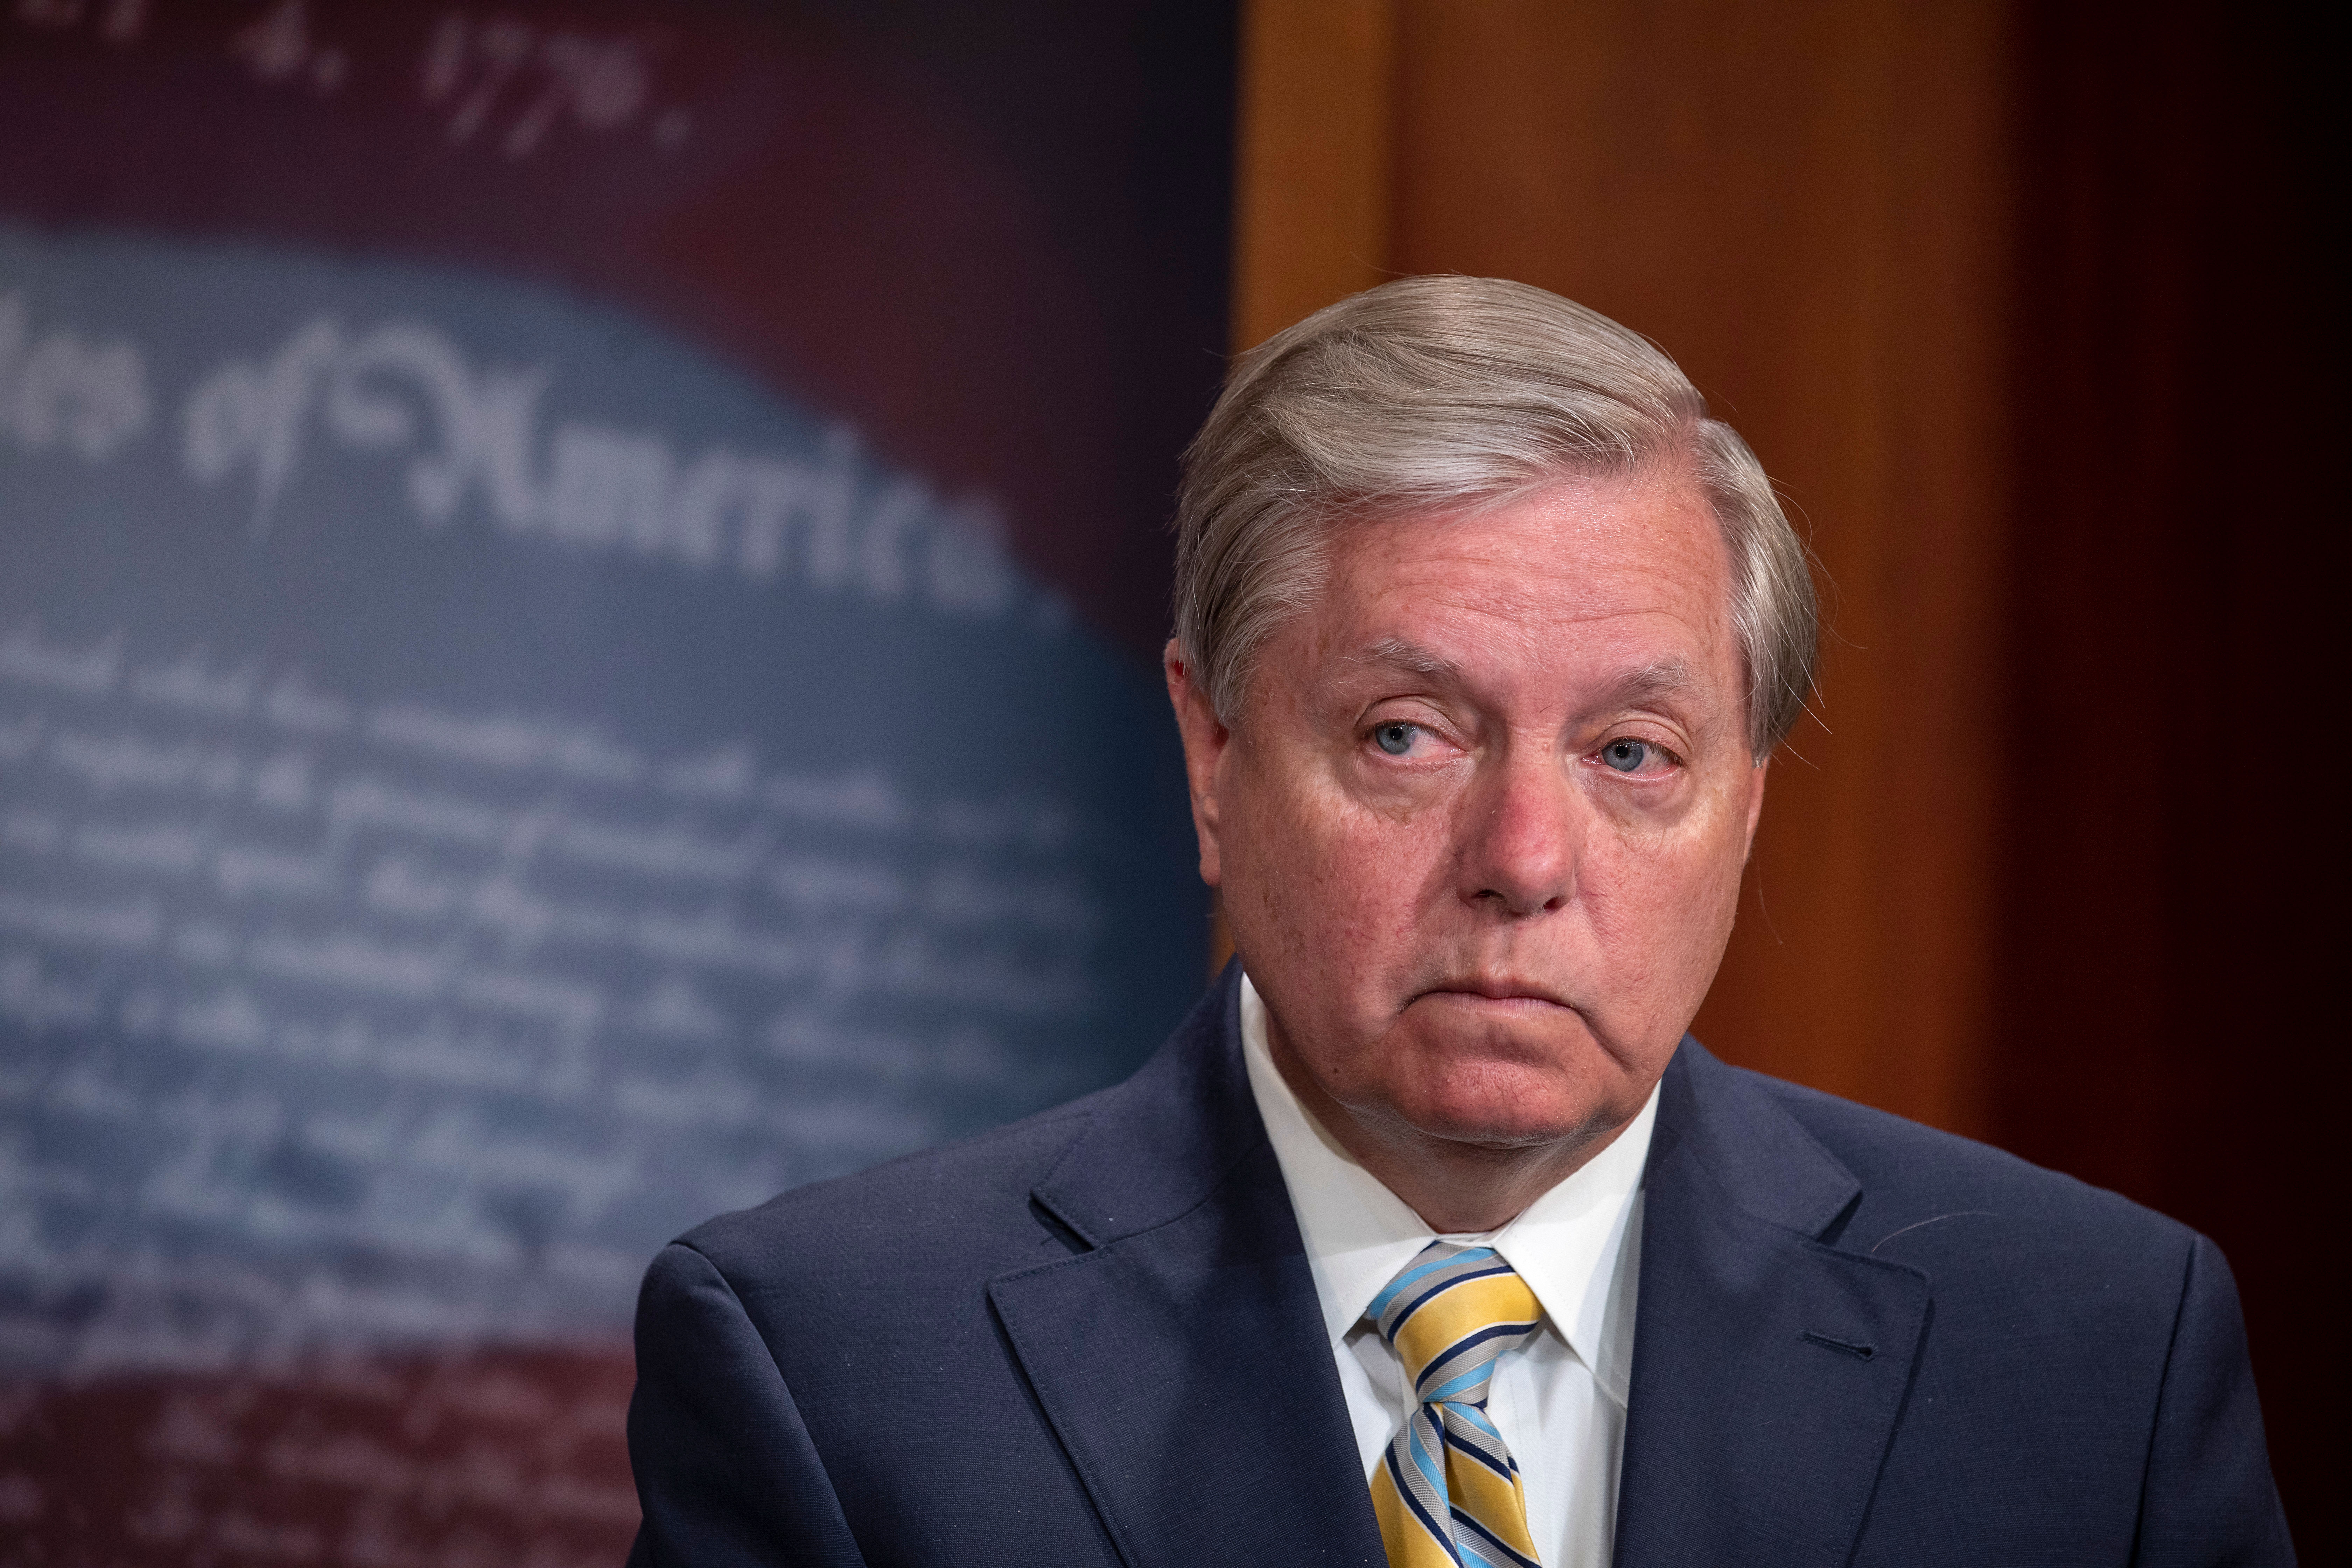 Sen. Lindsey Graham attends a press conference in Washington, DC, on July 1.